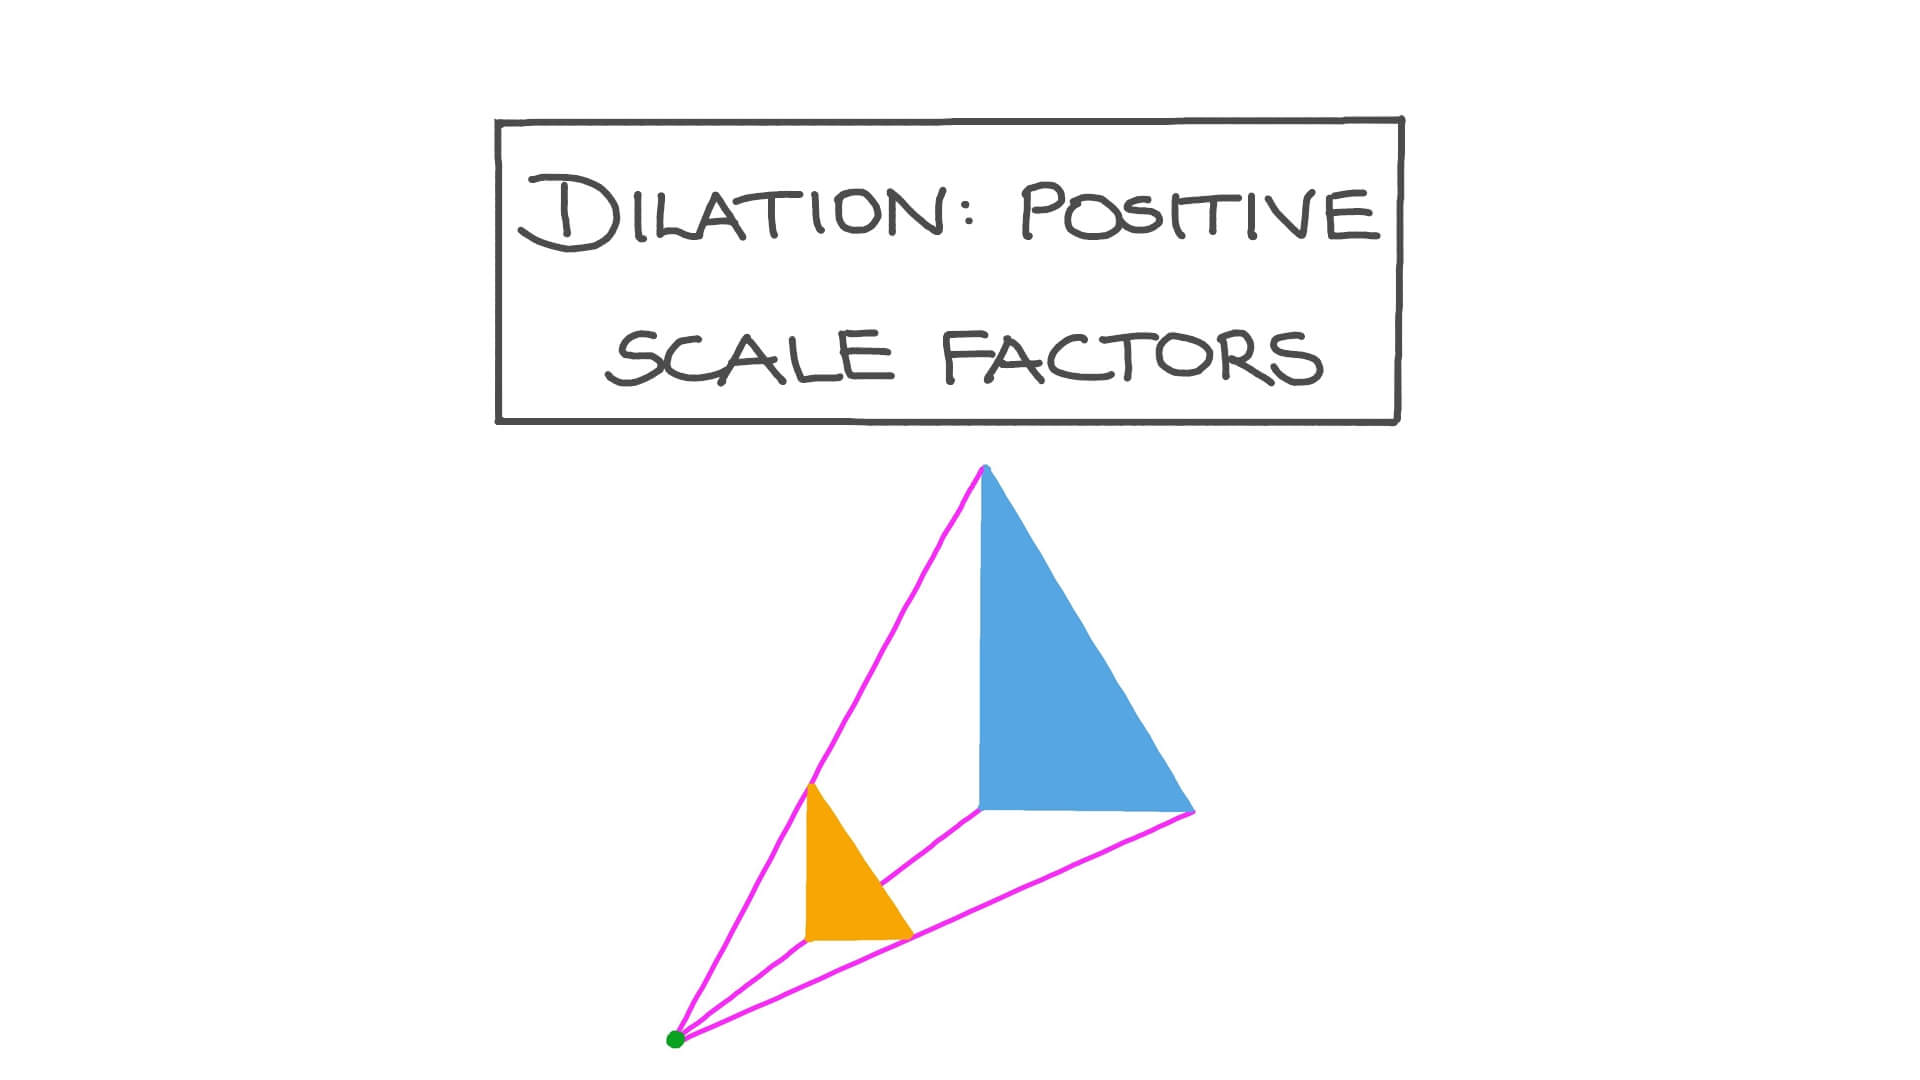 hight resolution of Lesson: Dilation: Positive Scale Factors   Nagwa